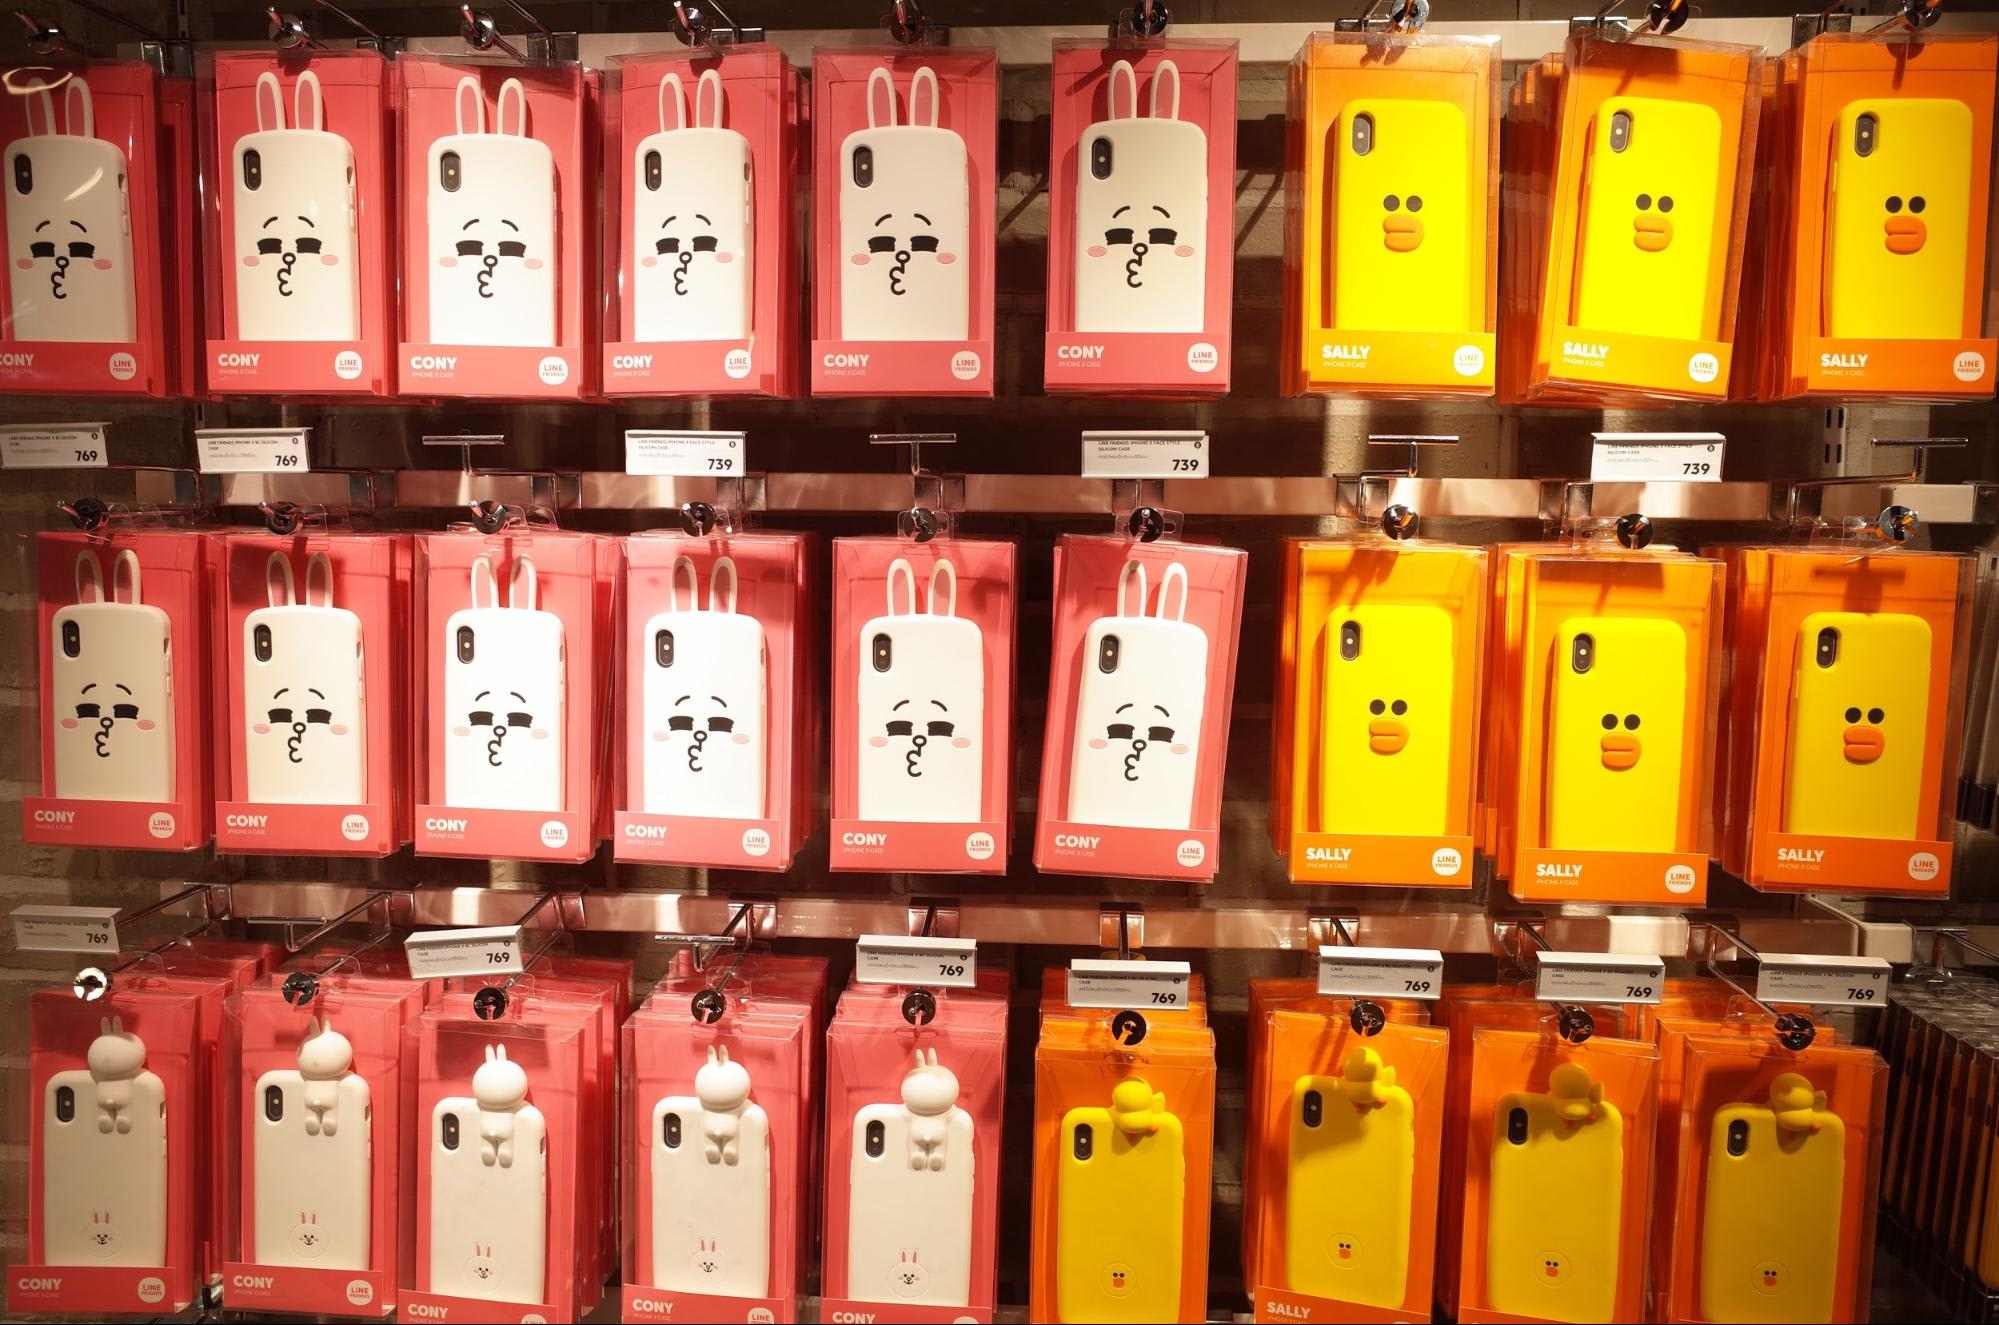 Sally and Cony phone cases at the LINE Store in Bangkok